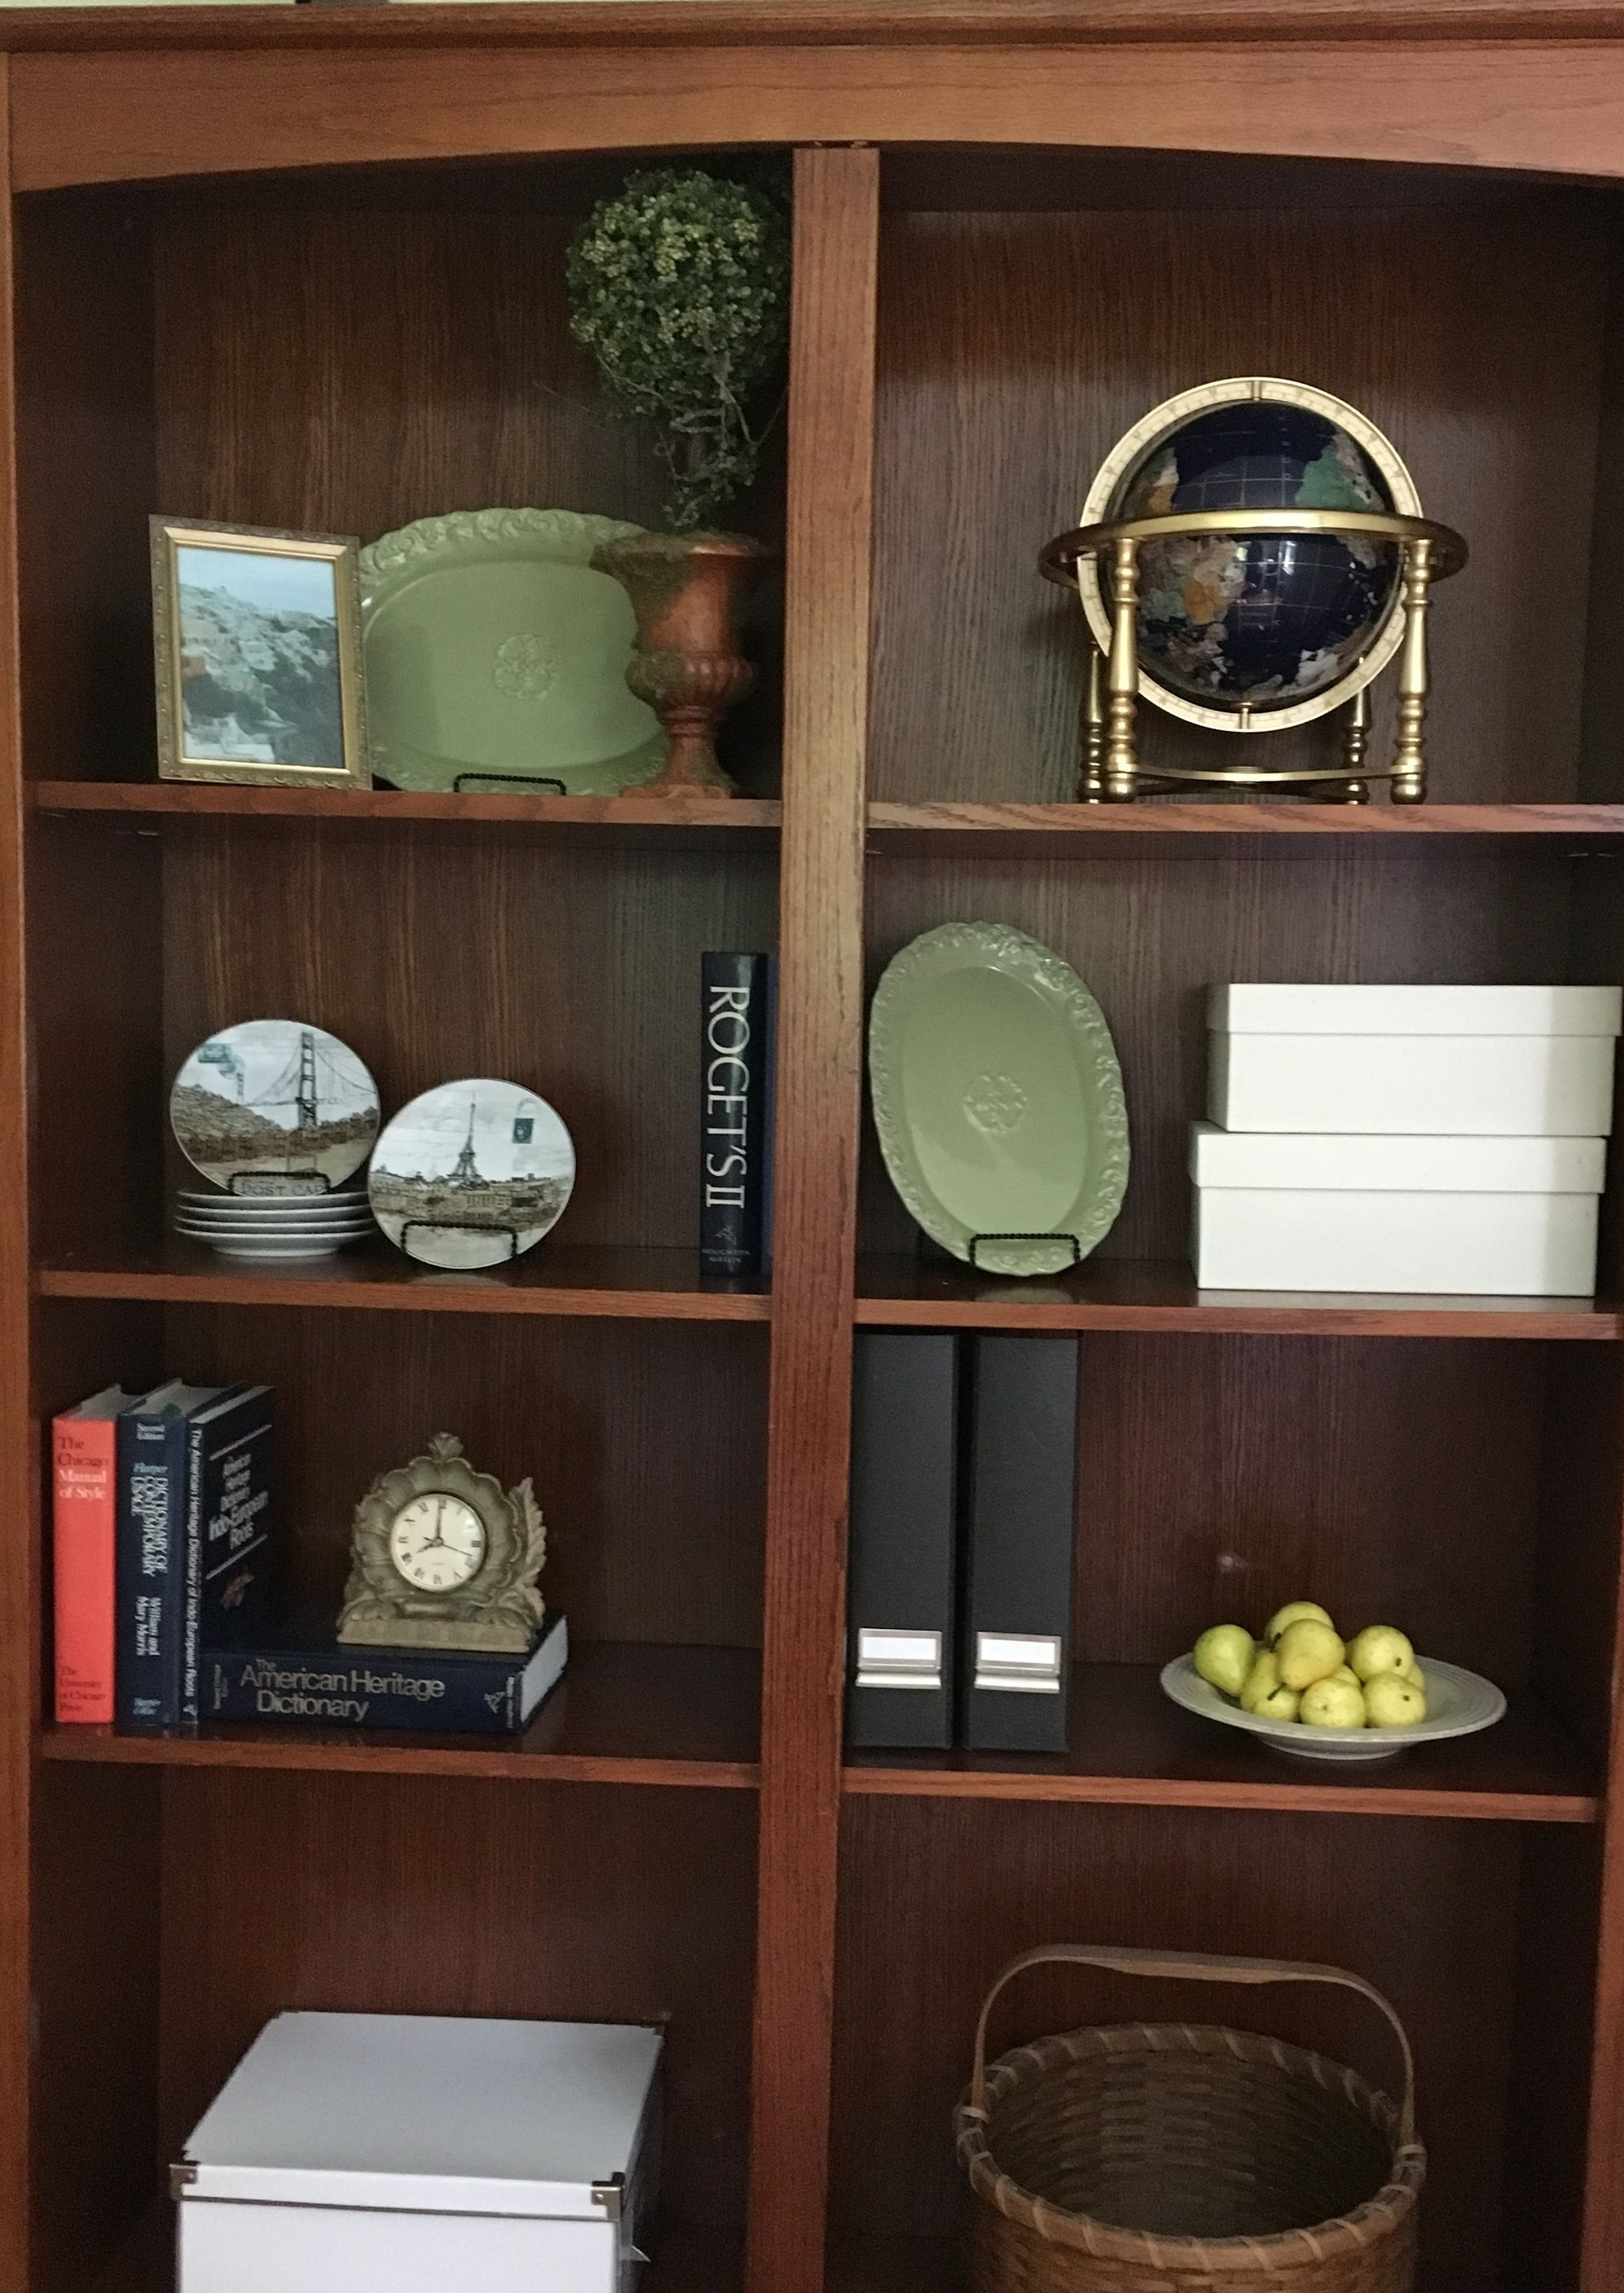 The office bookcase continues our aspirational travel theme with a globe, and pictures and scenes from far away places. Any necessary clutter is contained in magazine files and decorative boxes.